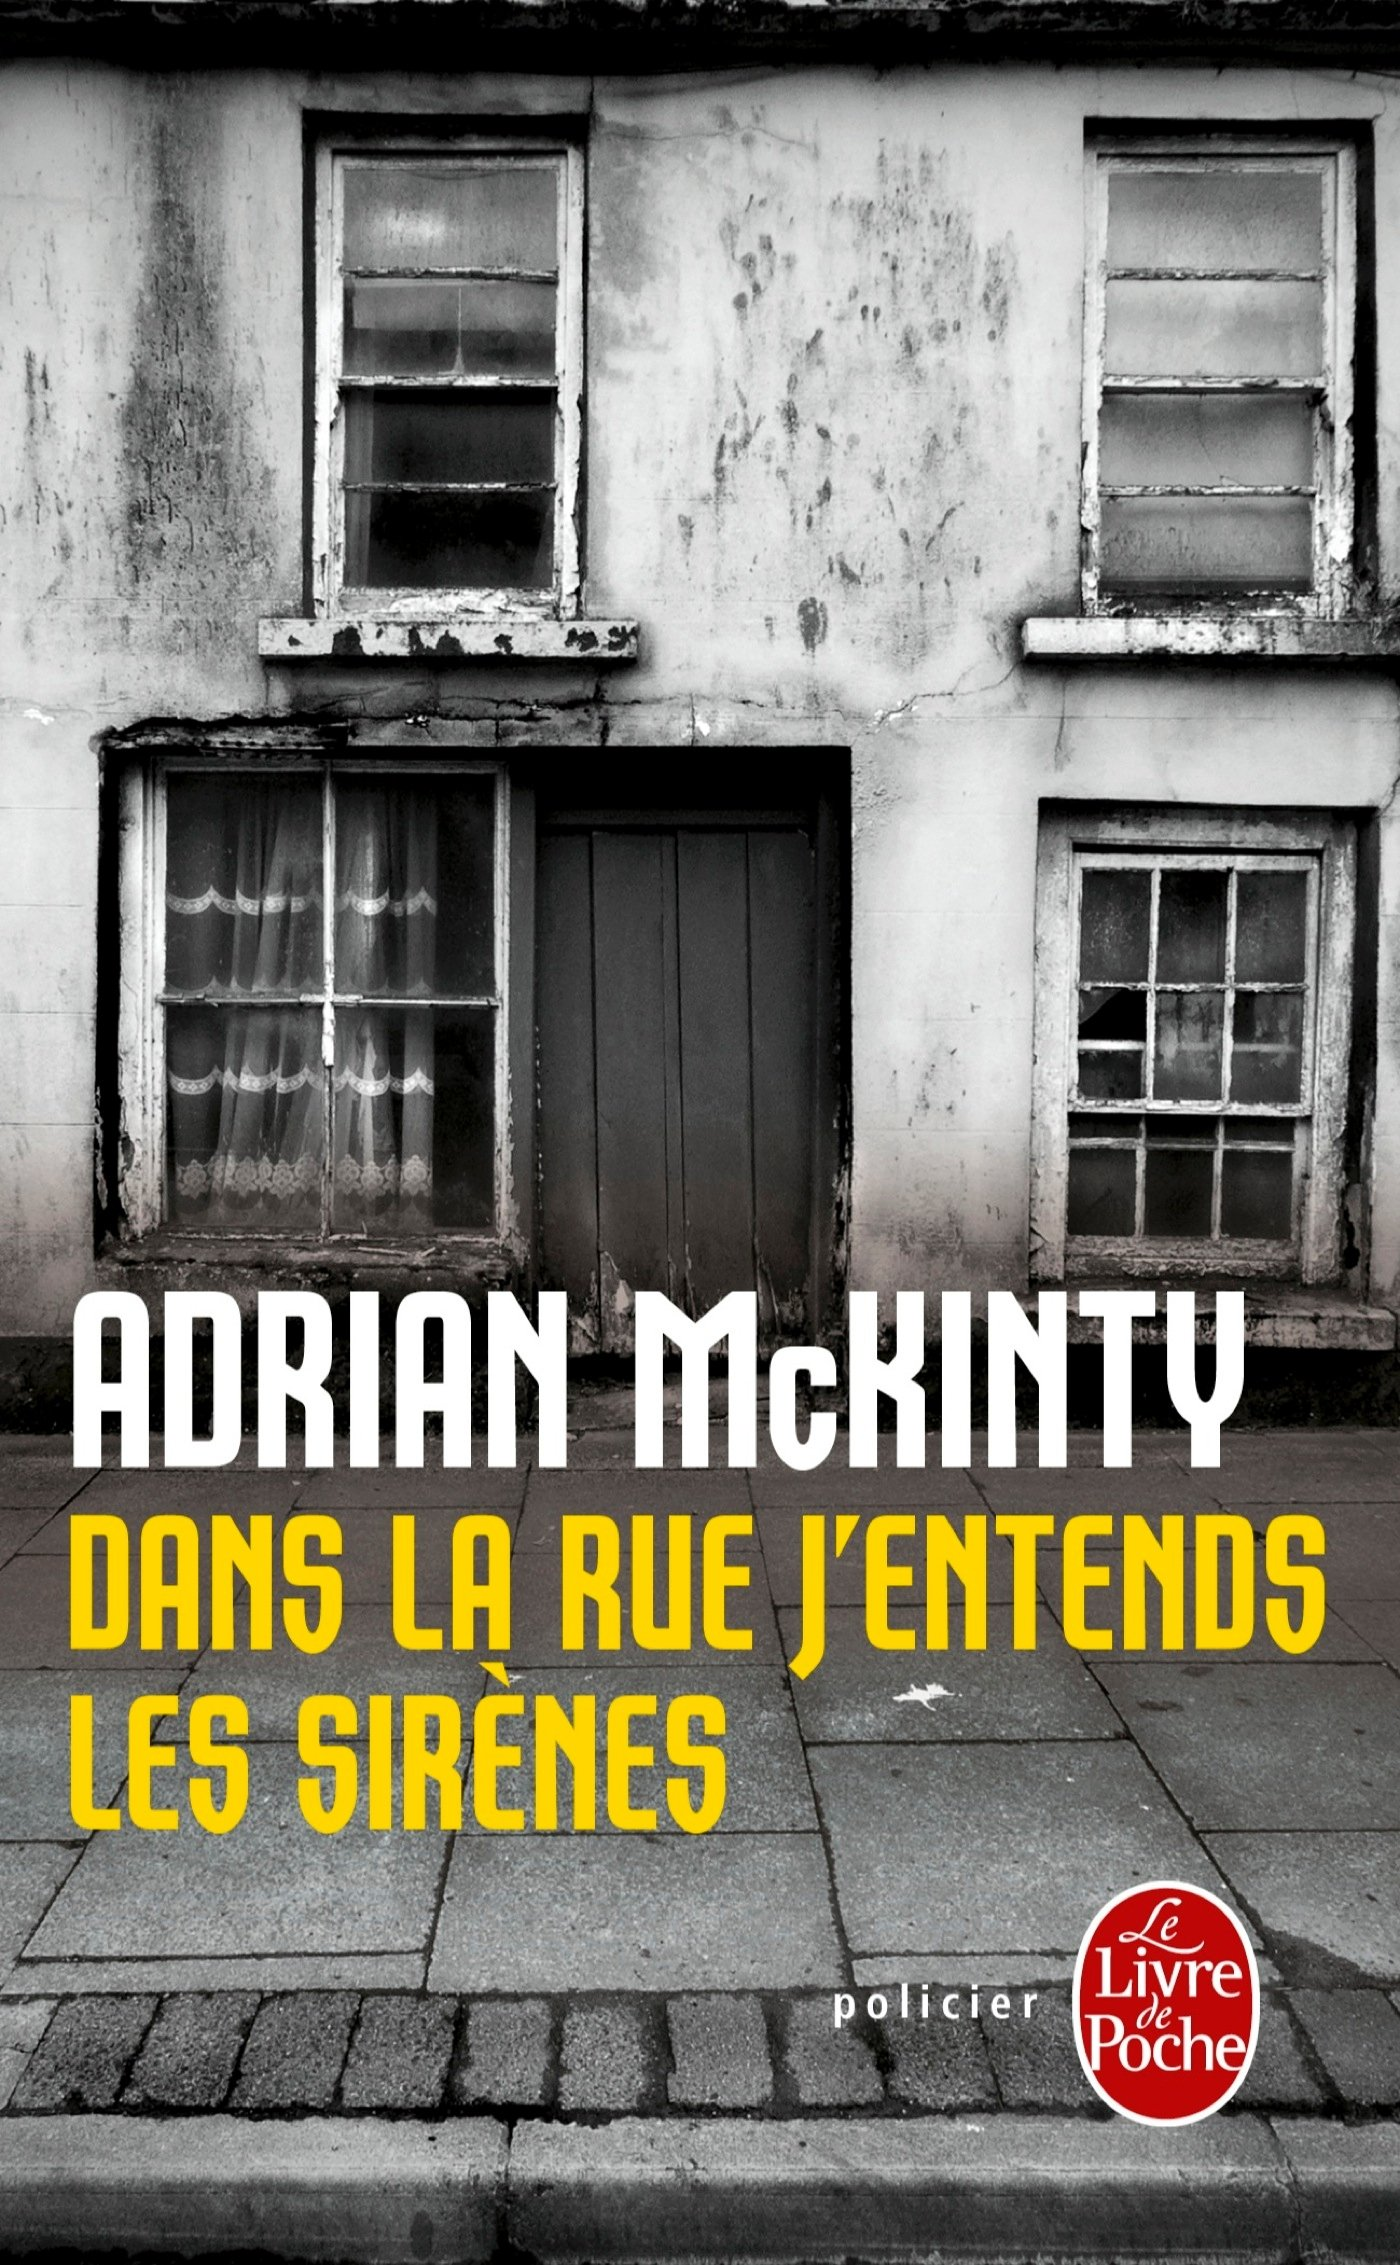 dans la rue j entends les sir nes d adrian mckinty en poche eric moreau traducteur. Black Bedroom Furniture Sets. Home Design Ideas